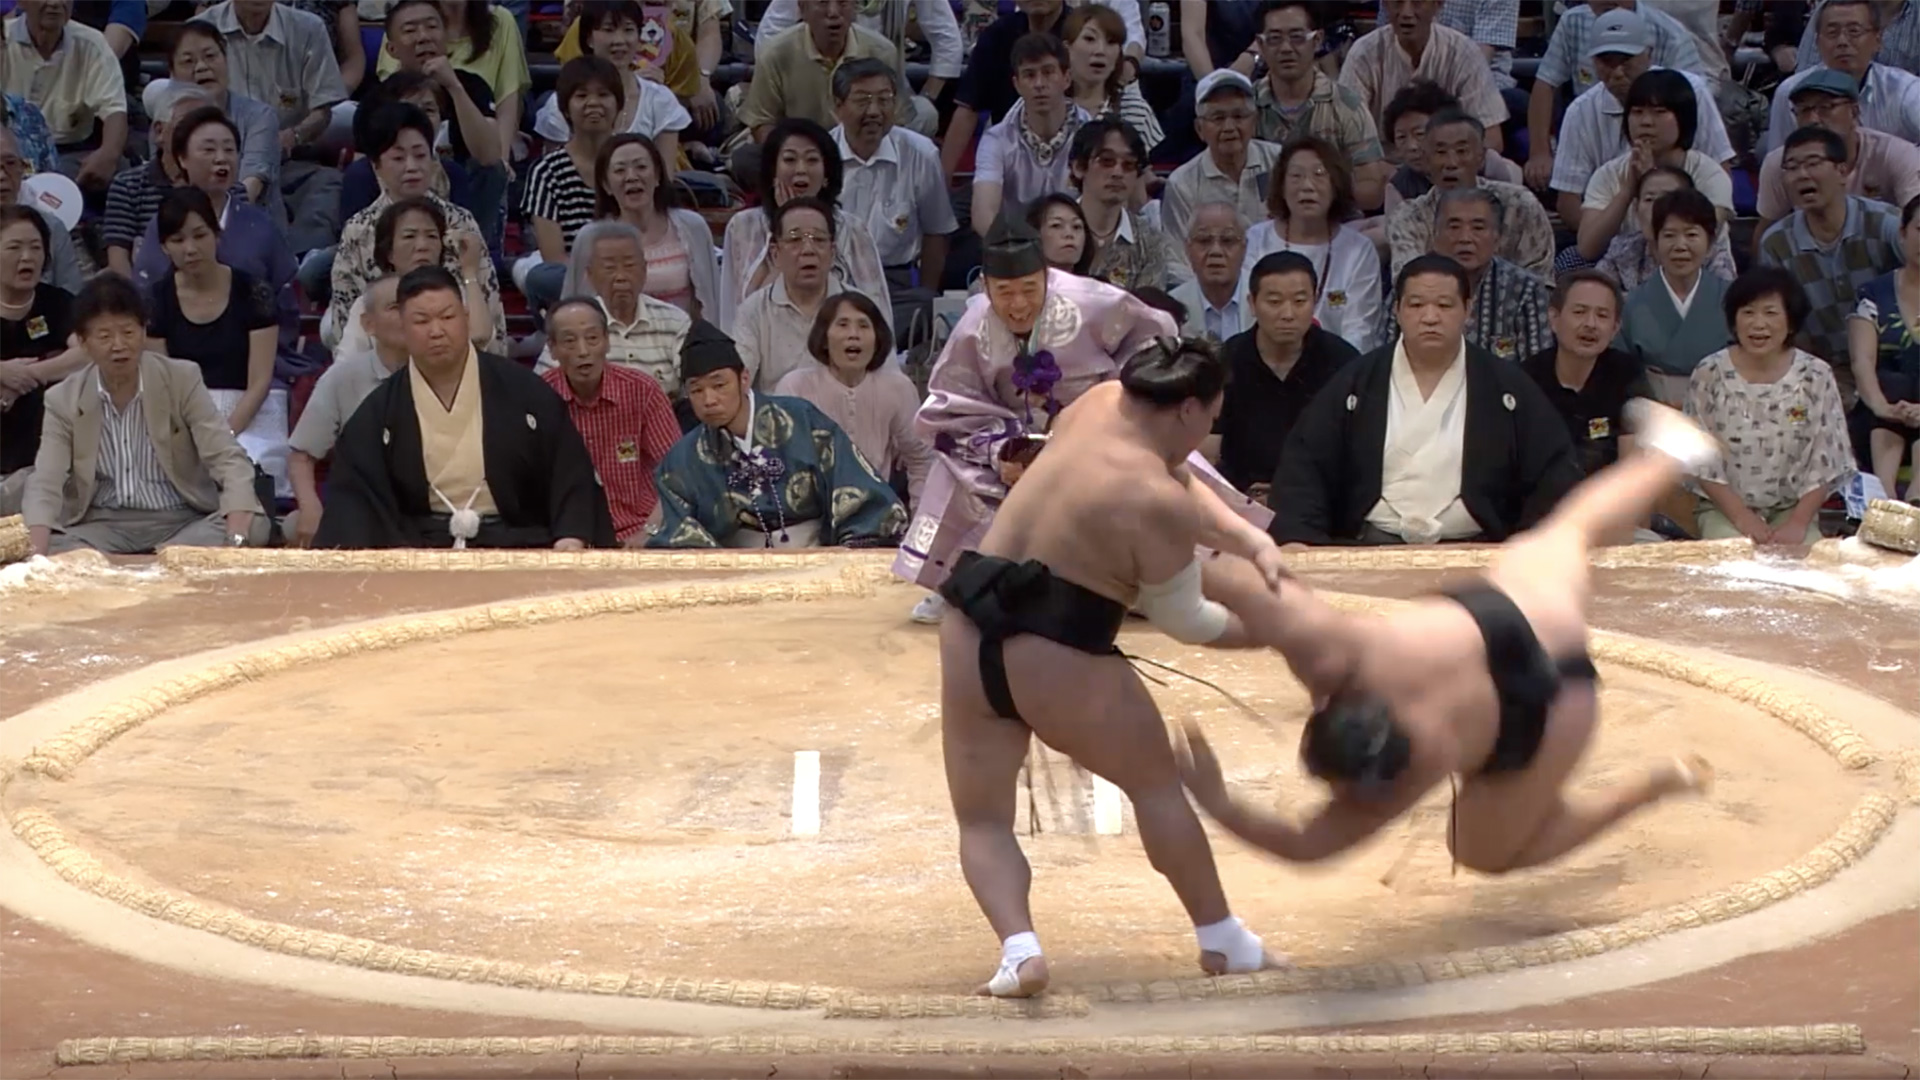 Amiuchi/The fishermans throw